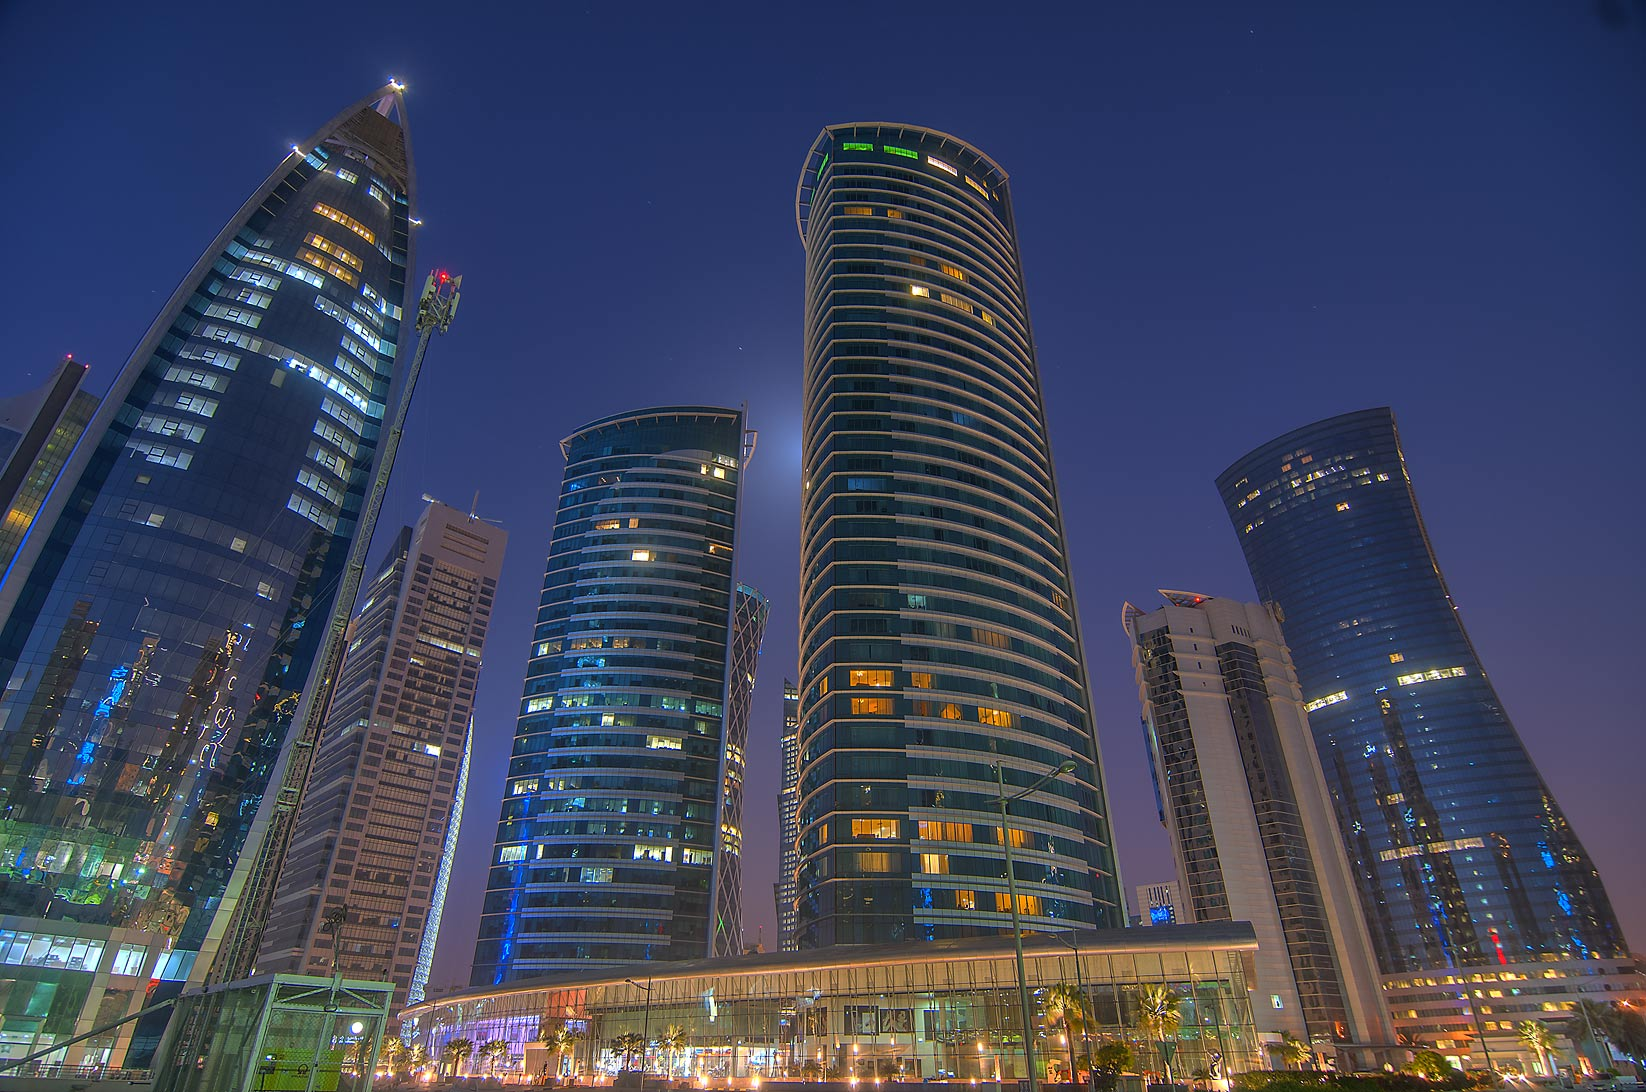 Al Fardan twin towers in West Bay. Doha, Qatar